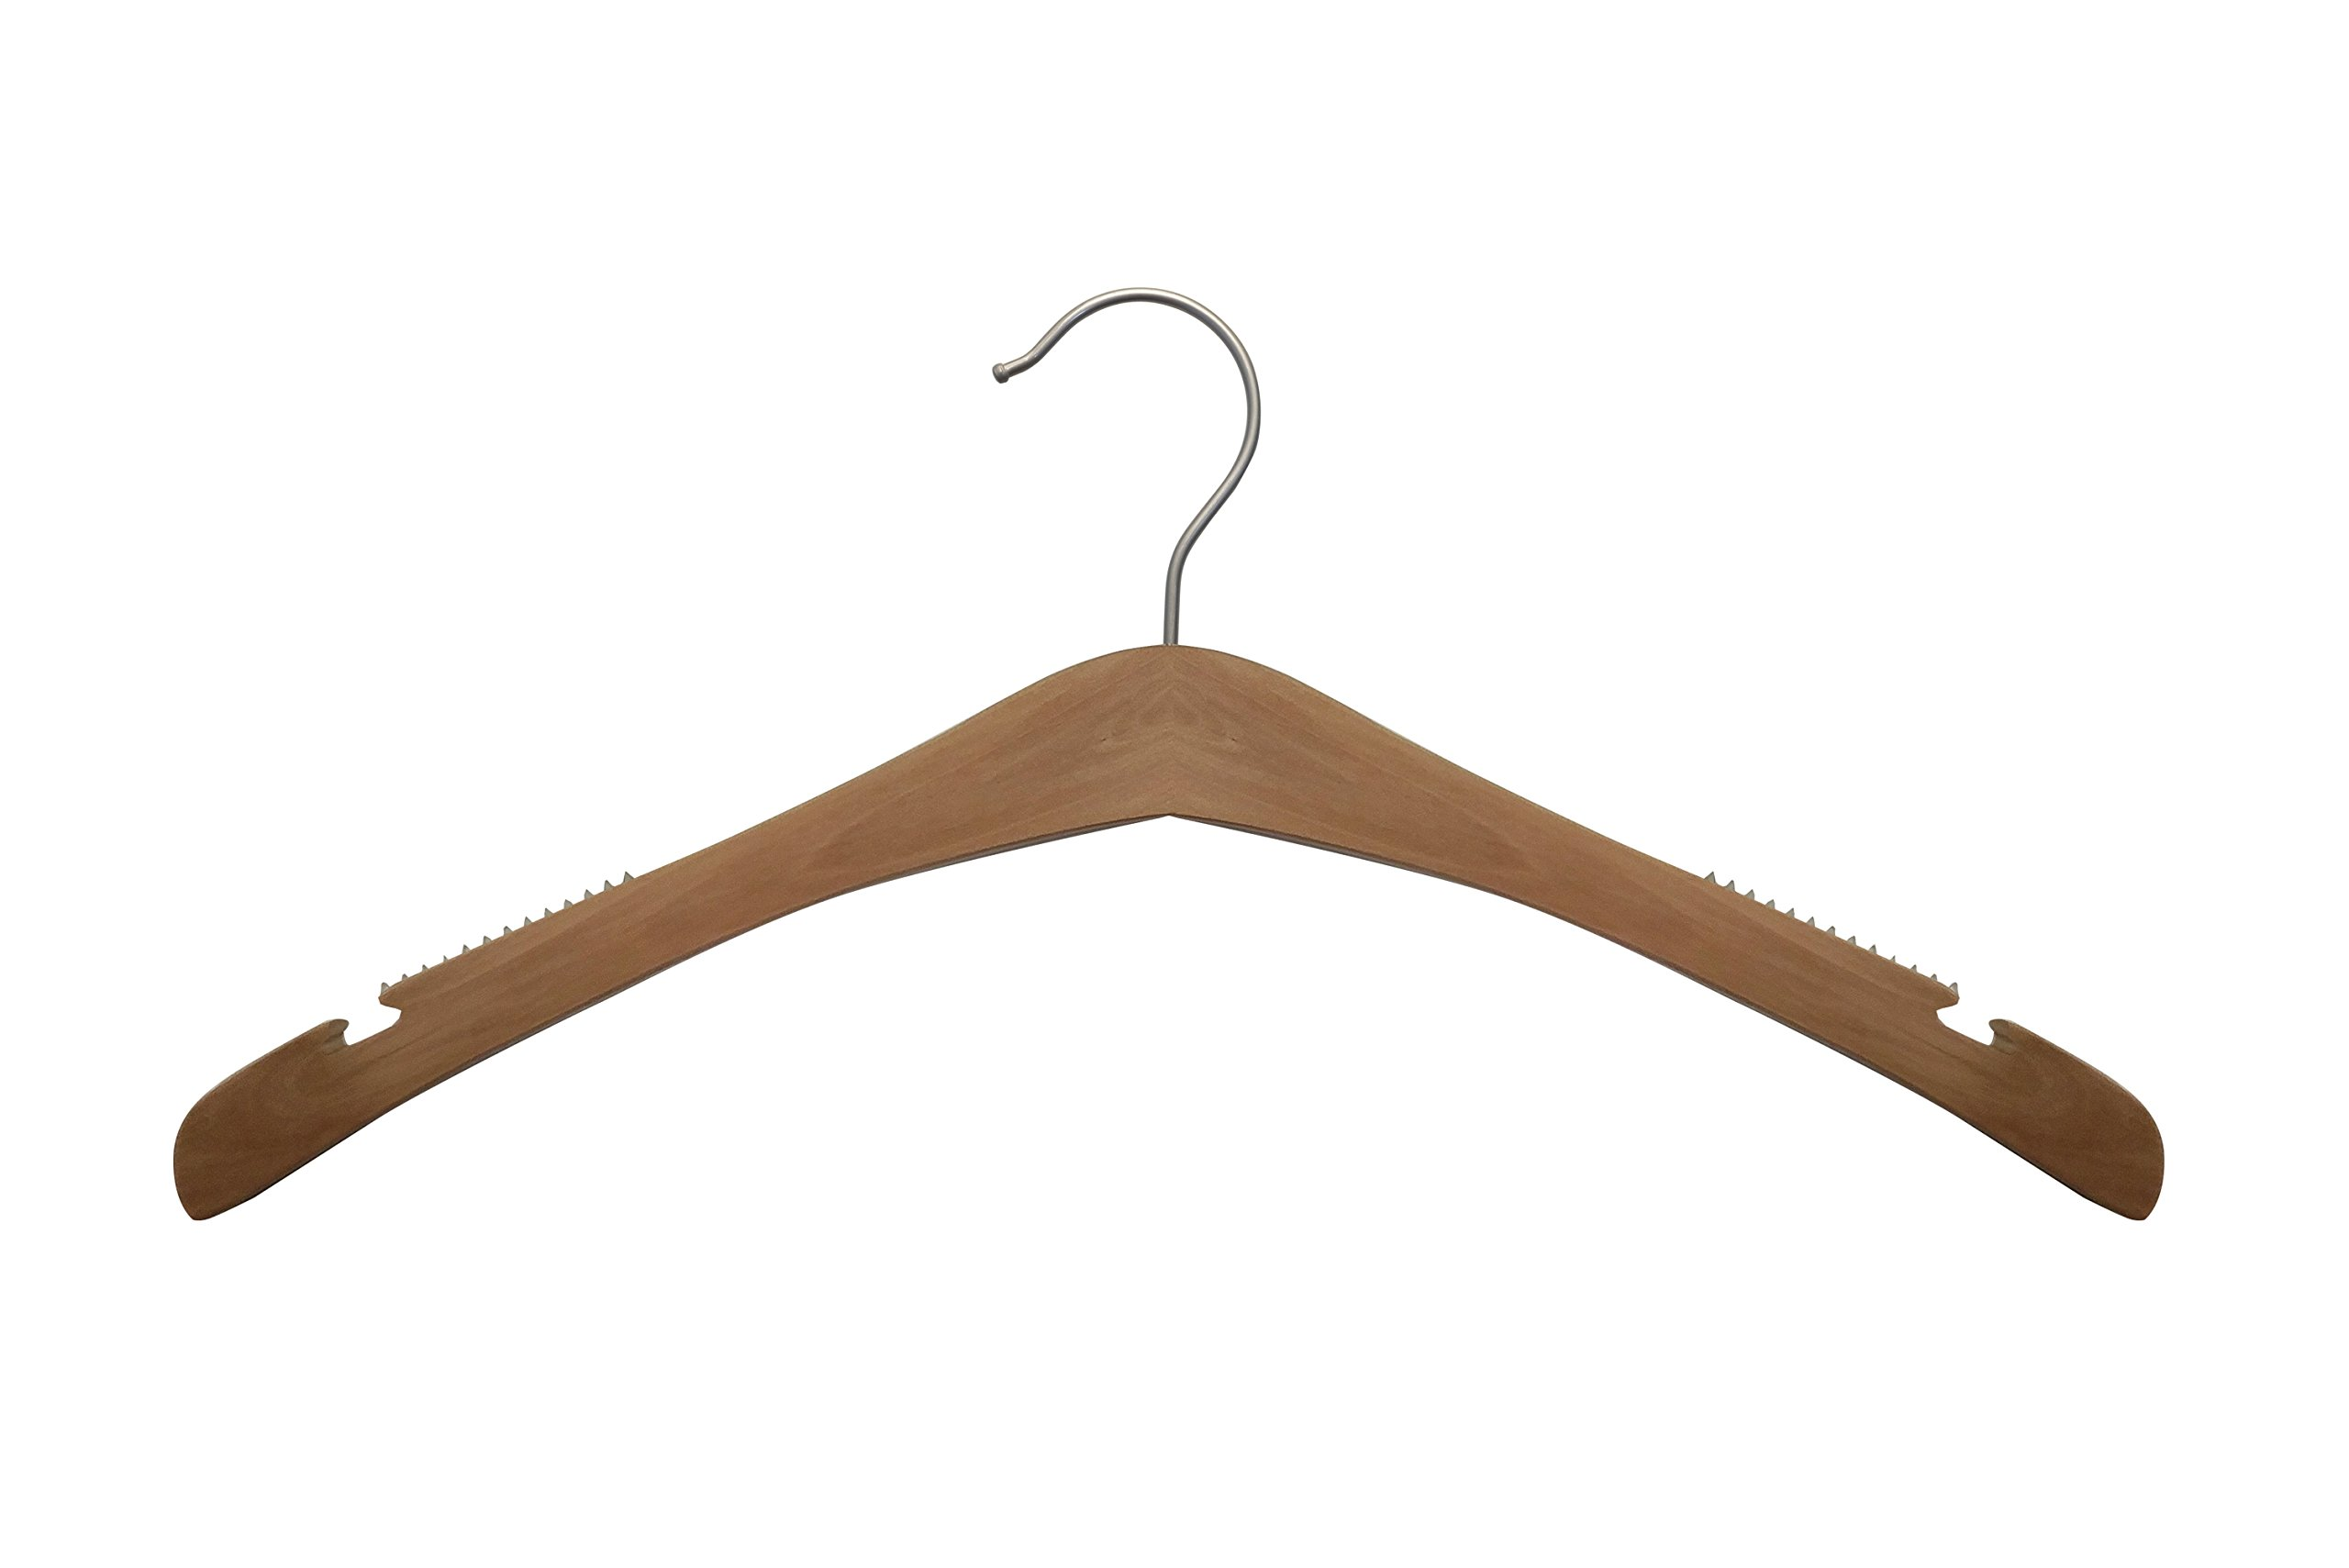 NAHANCO 30017   Signature Wood Hangers, Low Gloss Natural, 16 3/4''  (Pack of 100)